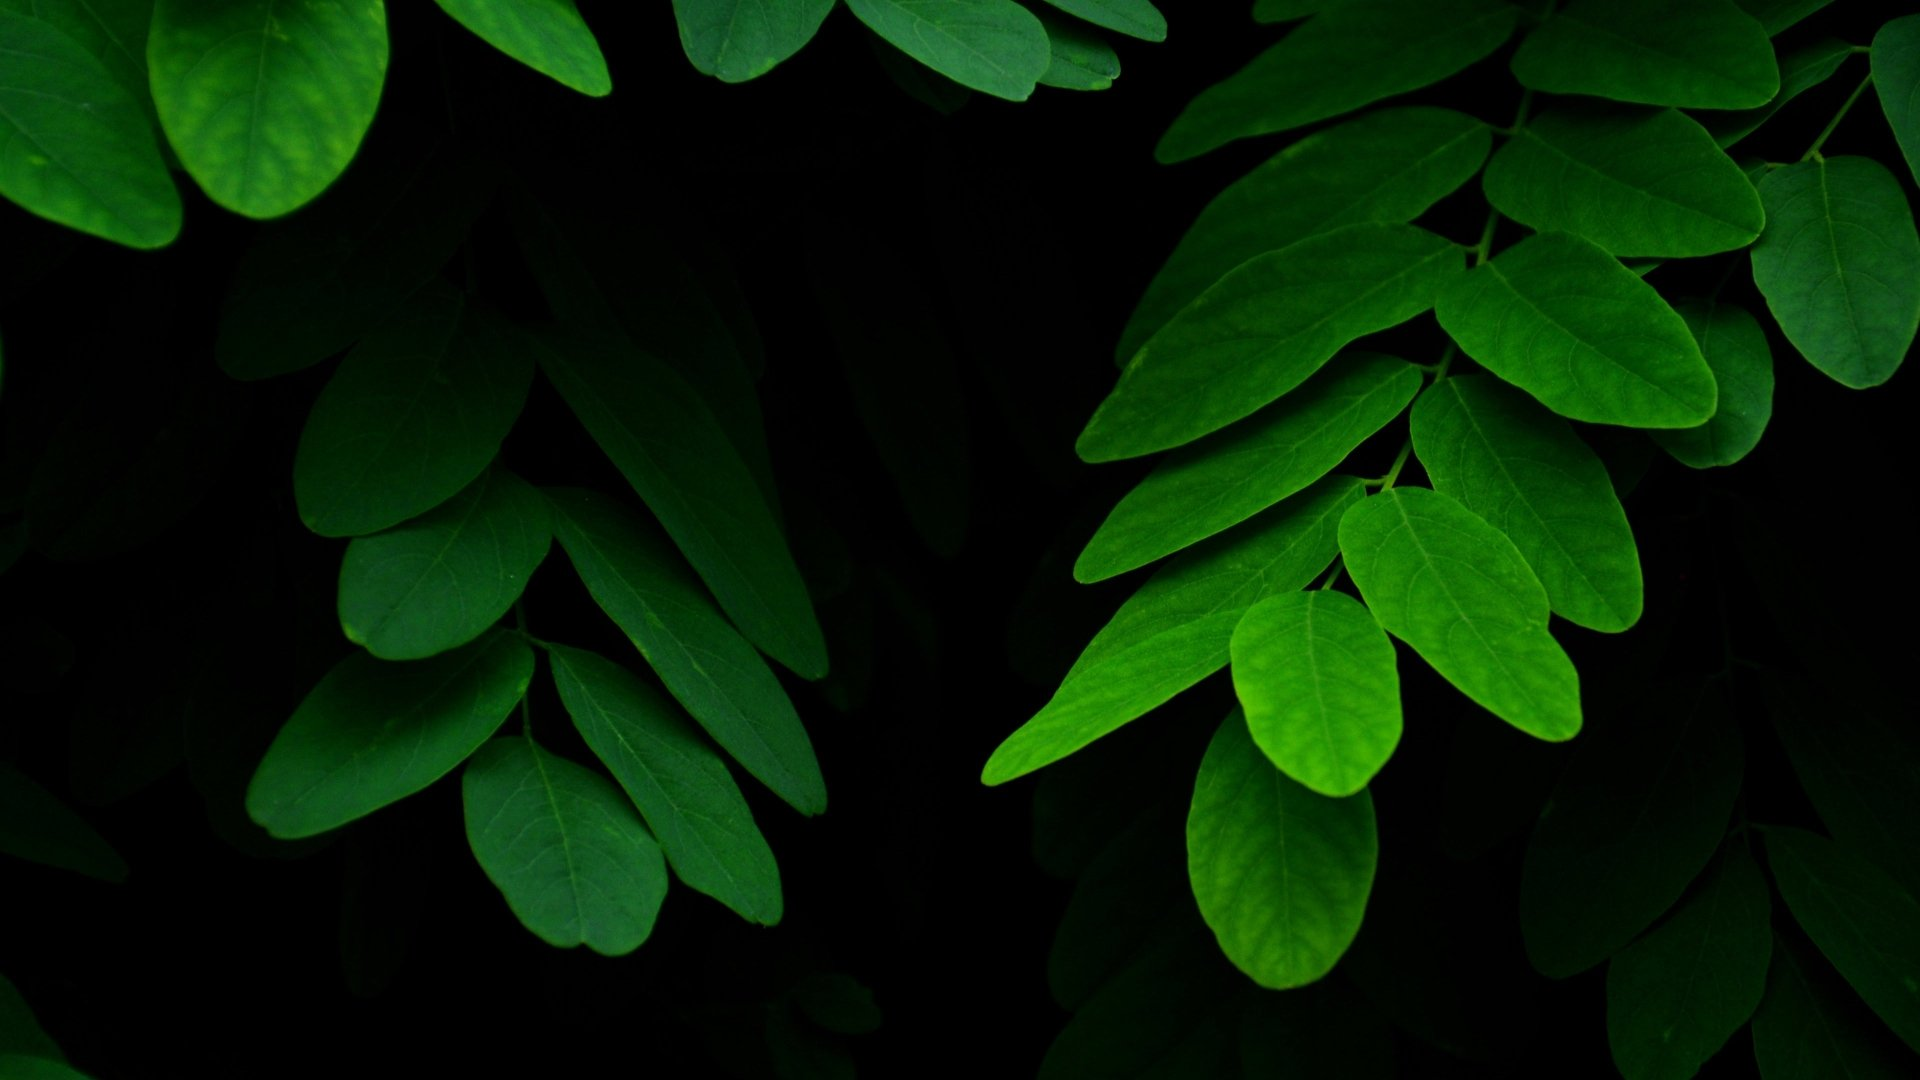 Green Leaves 4k Ultra Hd Wallpaper Background Image